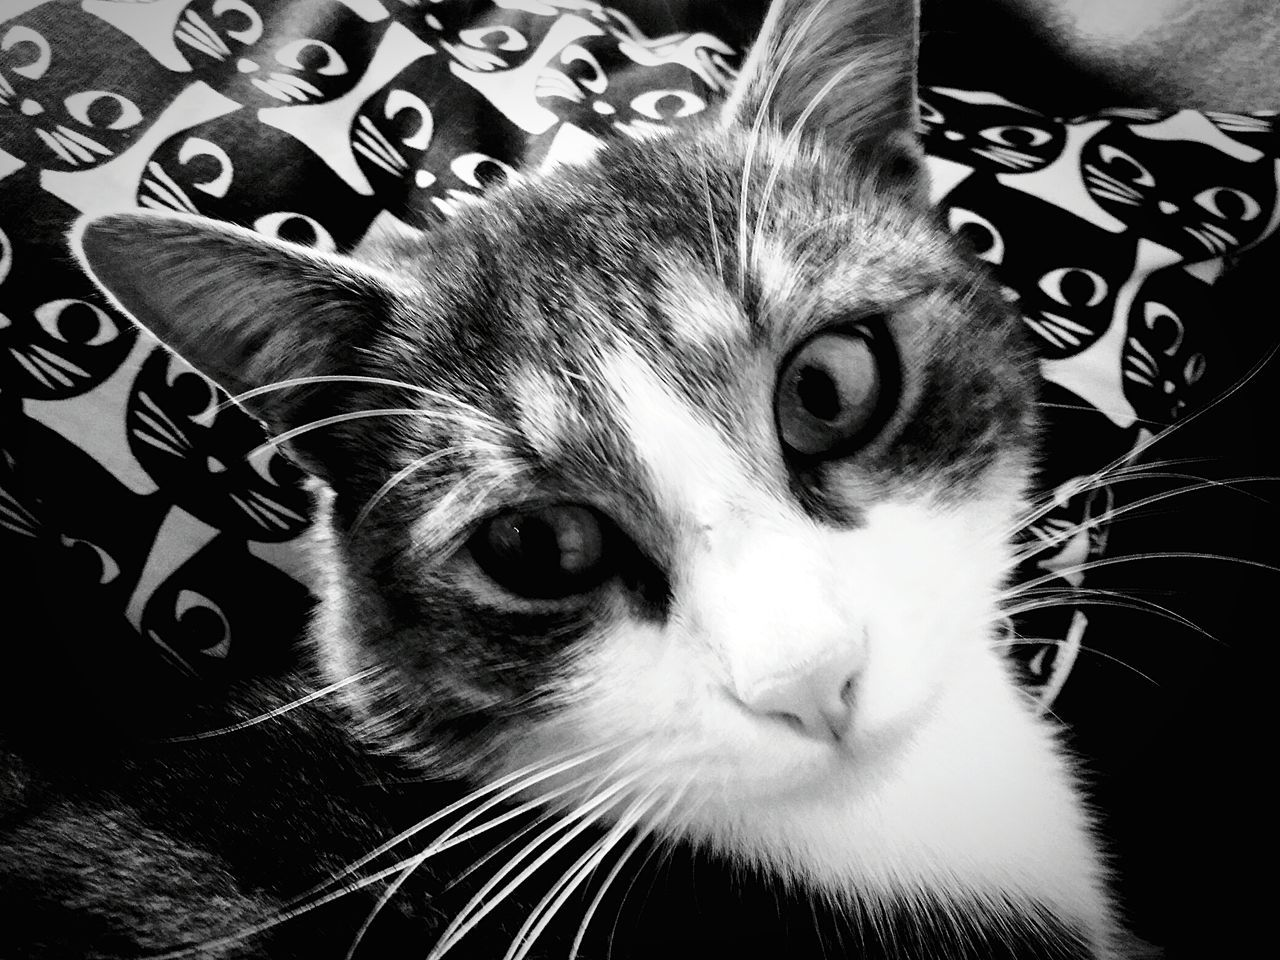 domestic cat, domestic animals, pets, animal themes, mammal, feline, whisker, no people, close-up, indoors, one animal, looking at camera, portrait, day